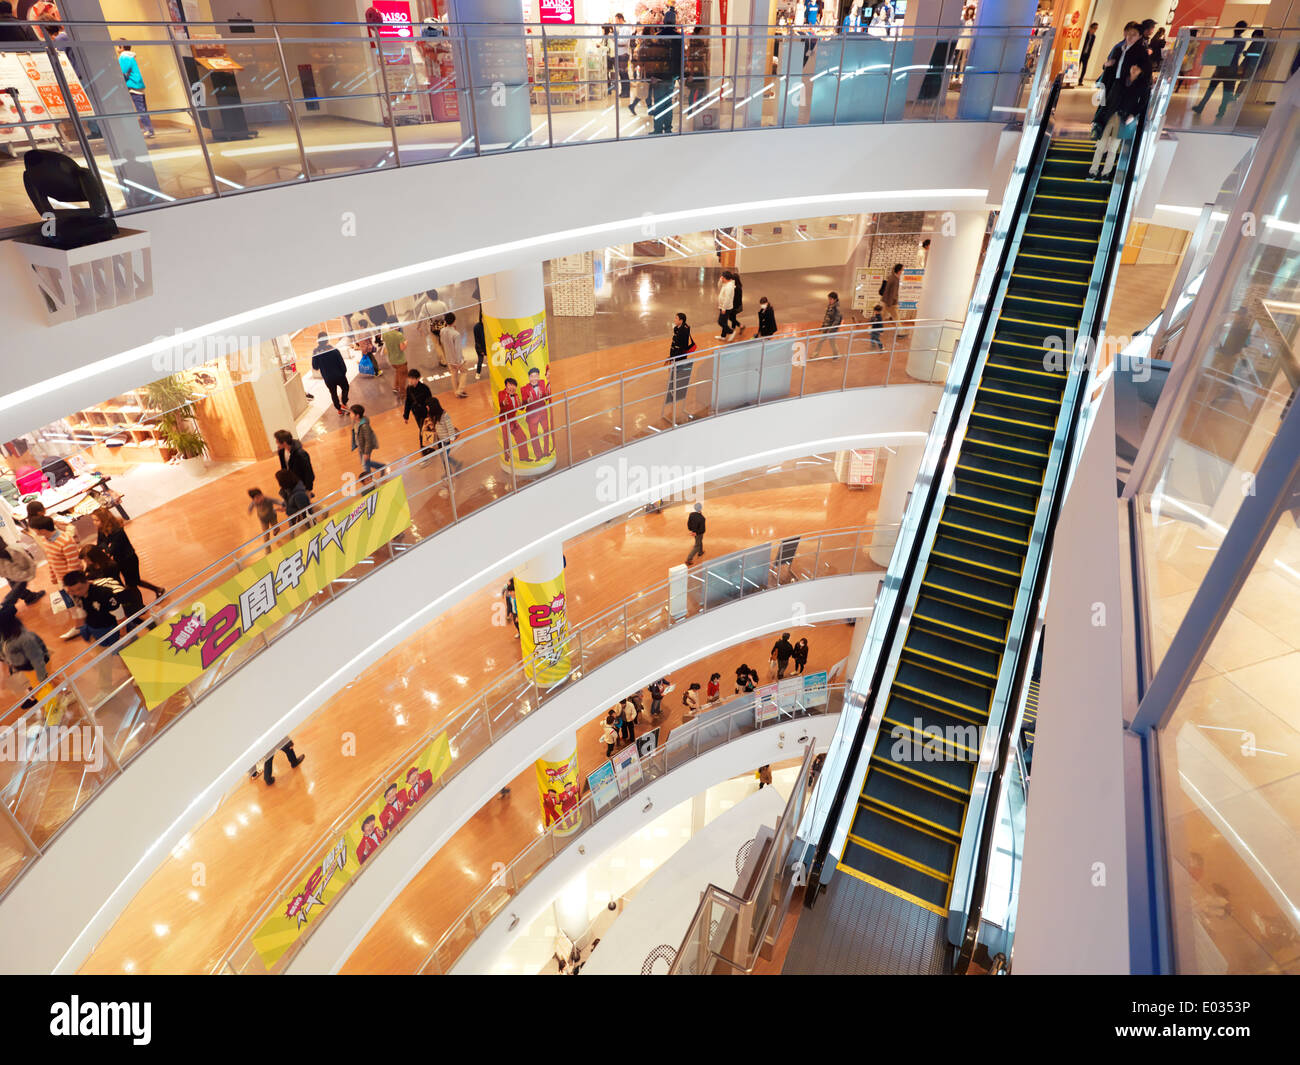 Multiple levels and escalators at Diver City shopping complex in Odaiba, Tokyo, Japan - Stock Image